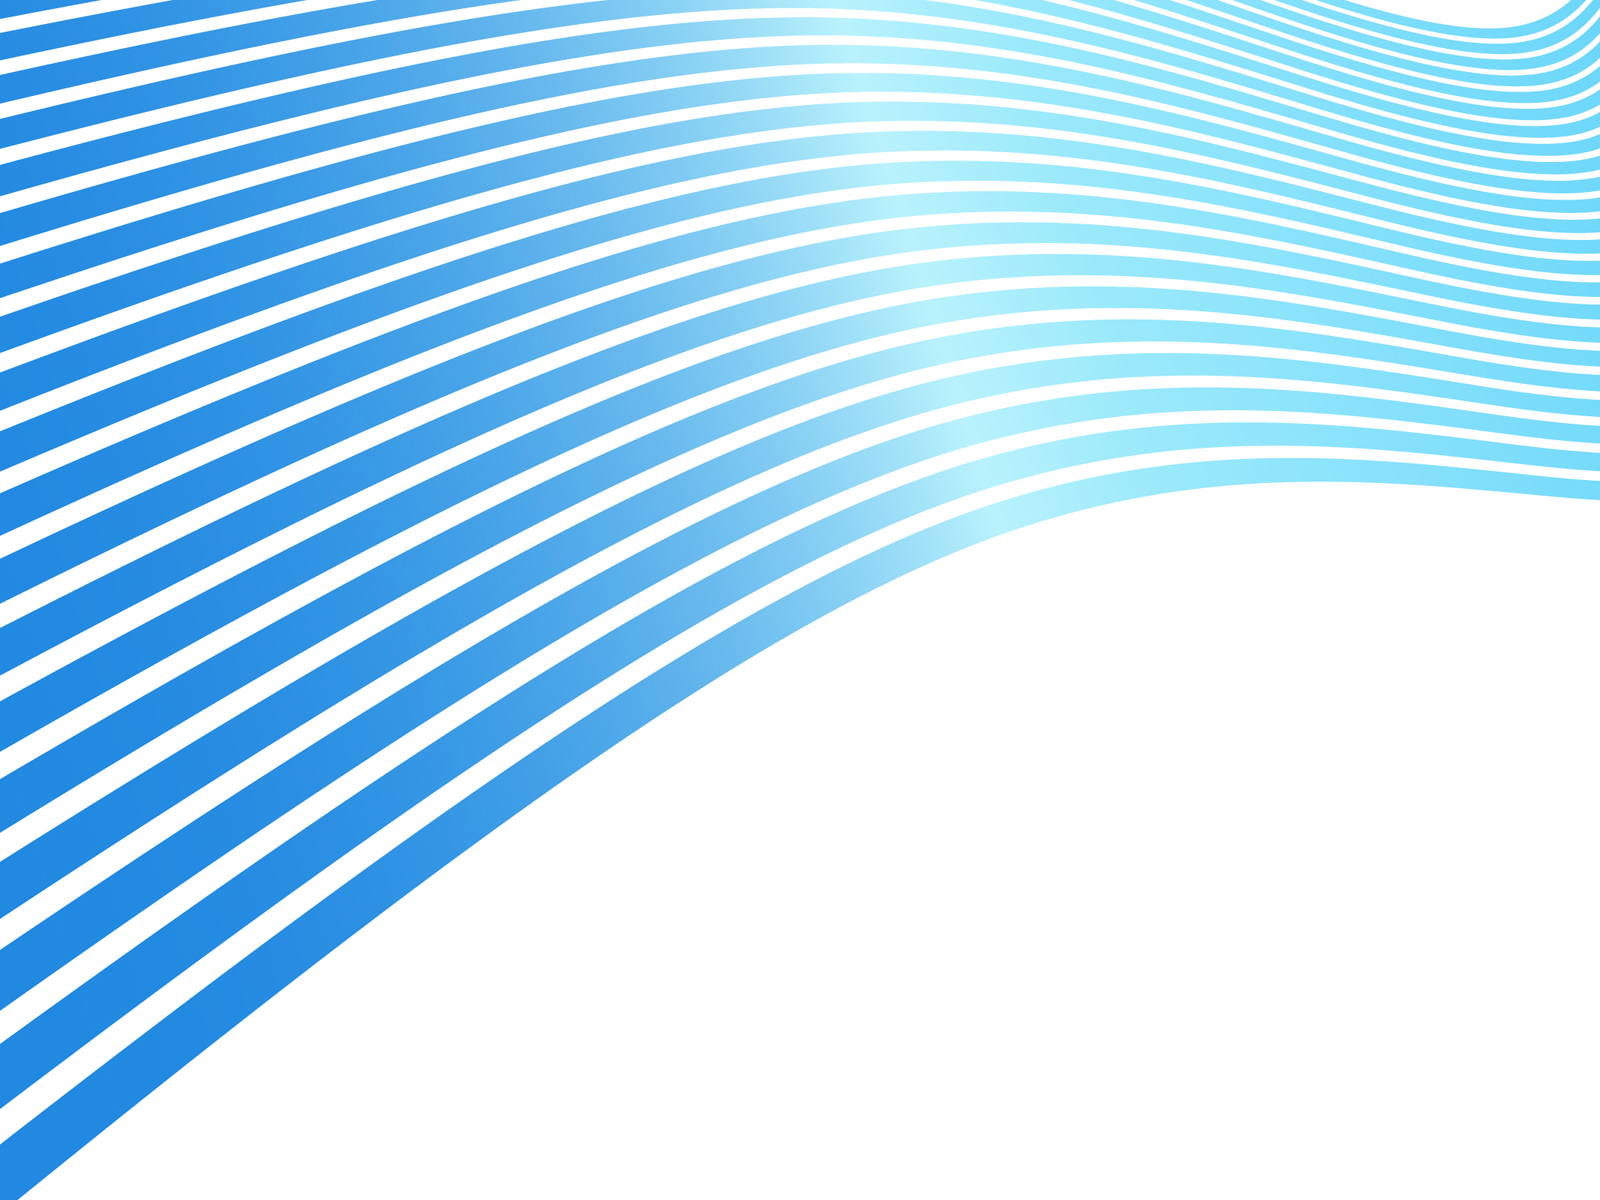 Line White Blue Lines Backgrounds Abstract Blue White Templates